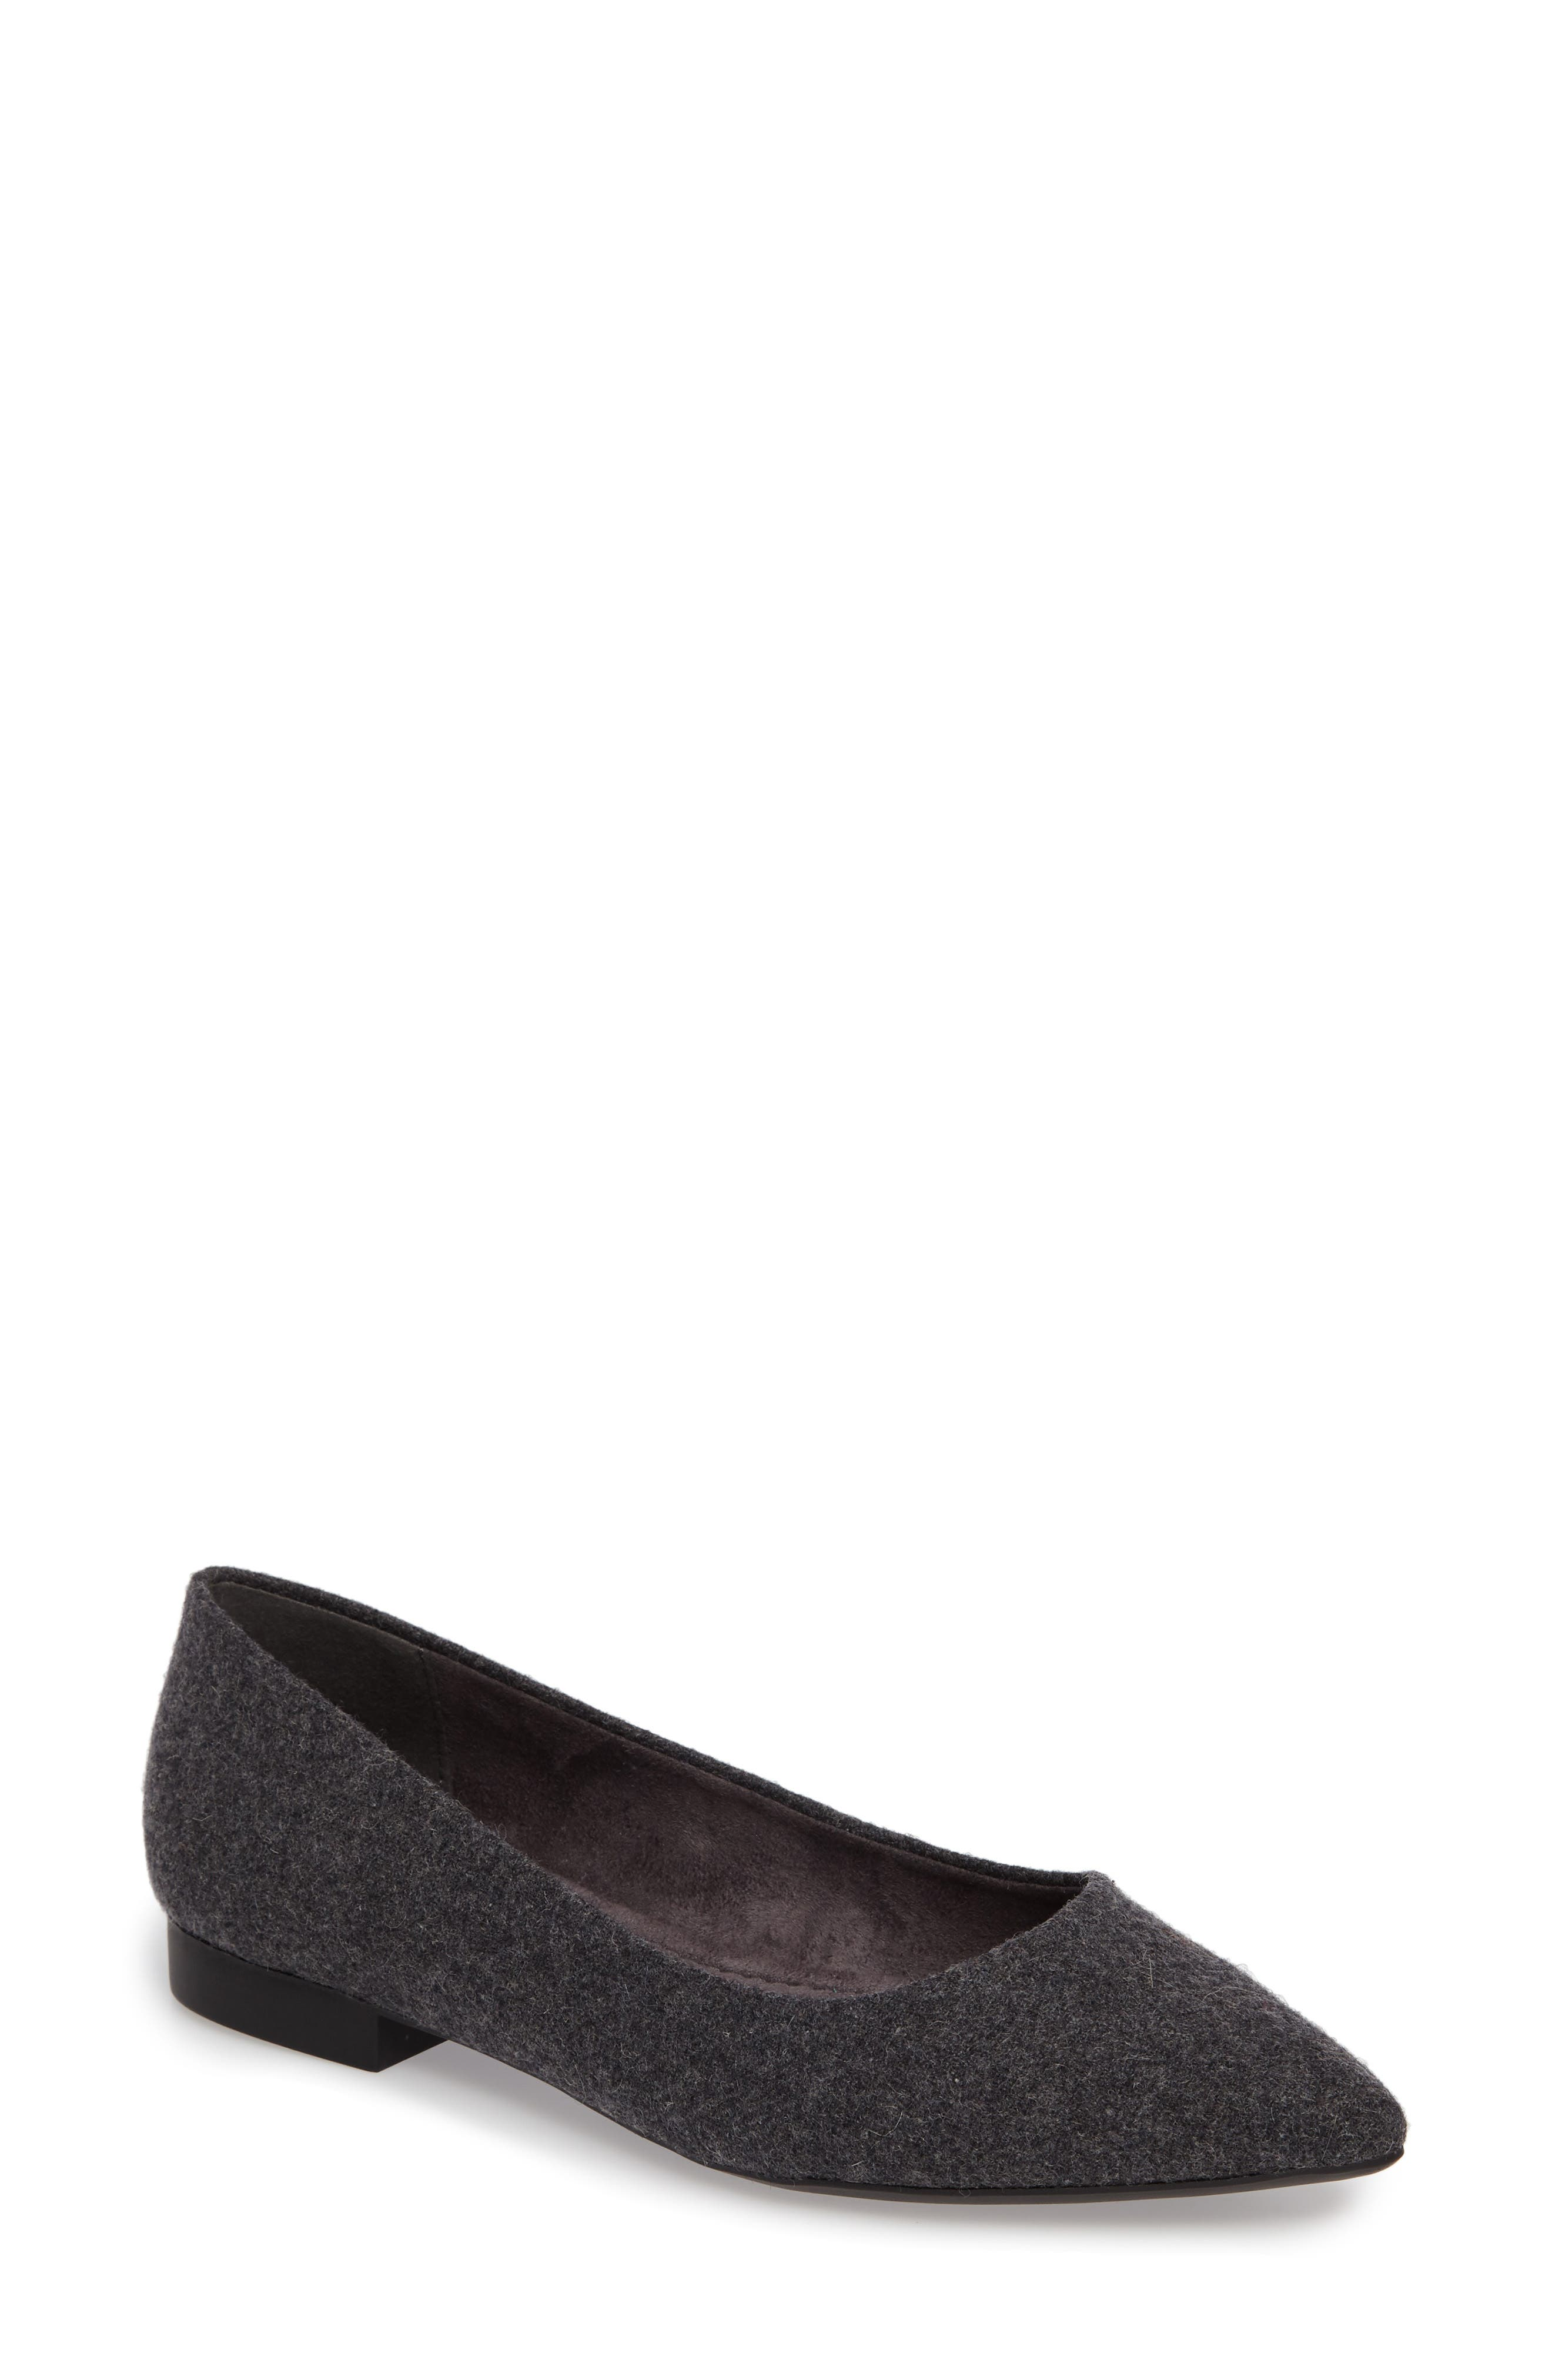 'Vivien' Pointy Toe Flat,                             Main thumbnail 1, color,                             GREY FLANNEL FABRIC